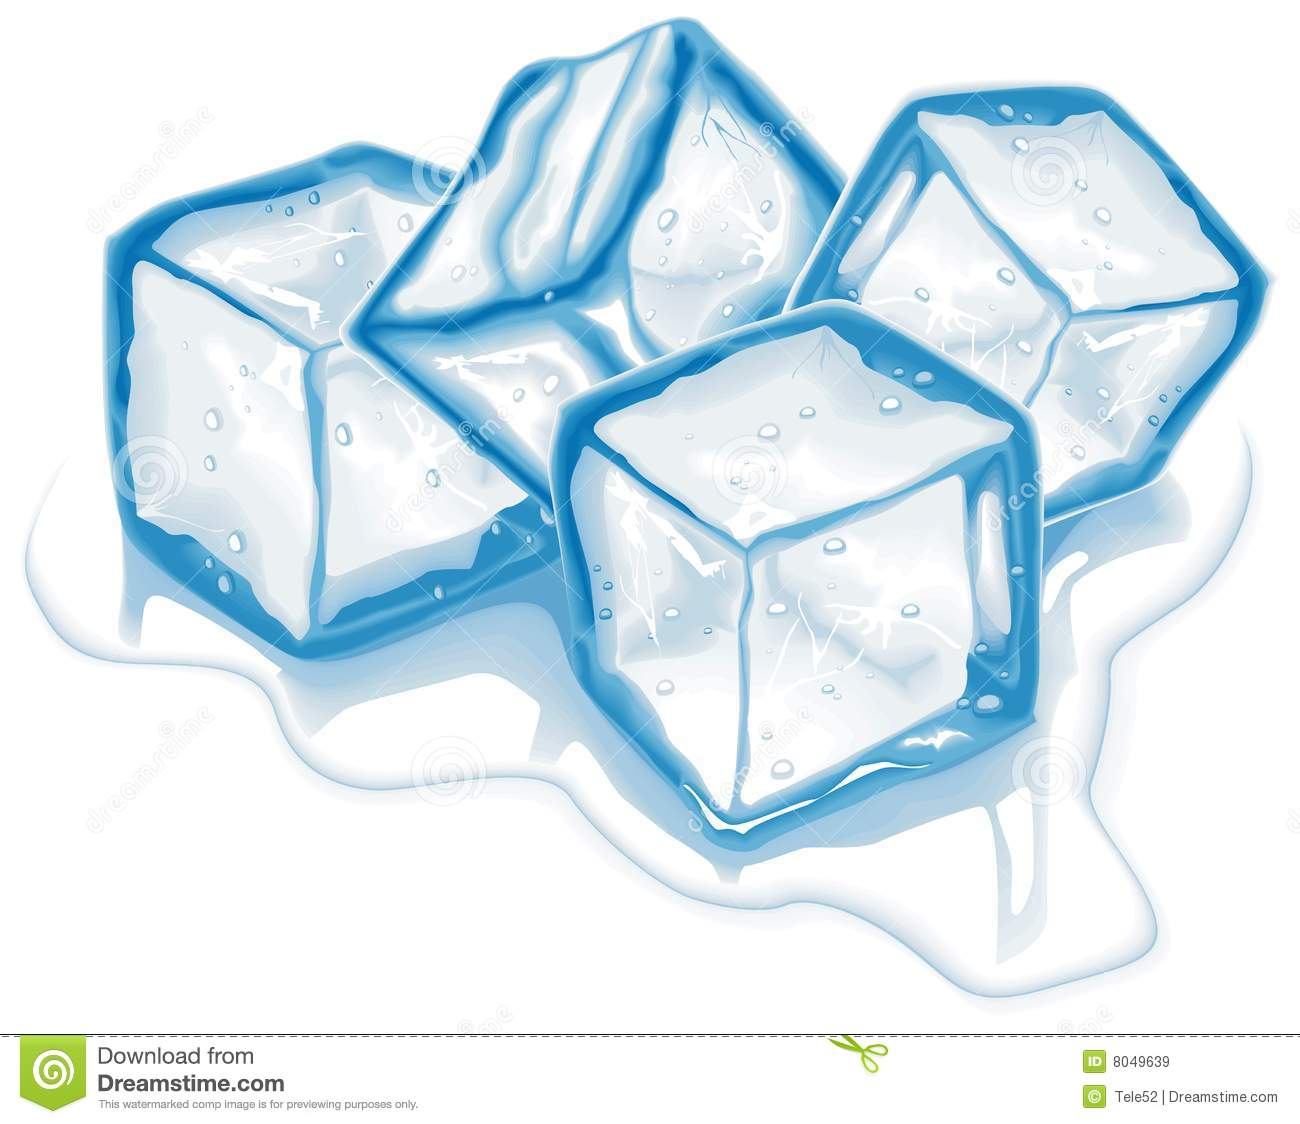 Royalty Free Stock Images Four Vector Ic-Royalty Free Stock Images Four Vector Ice Cubes-8